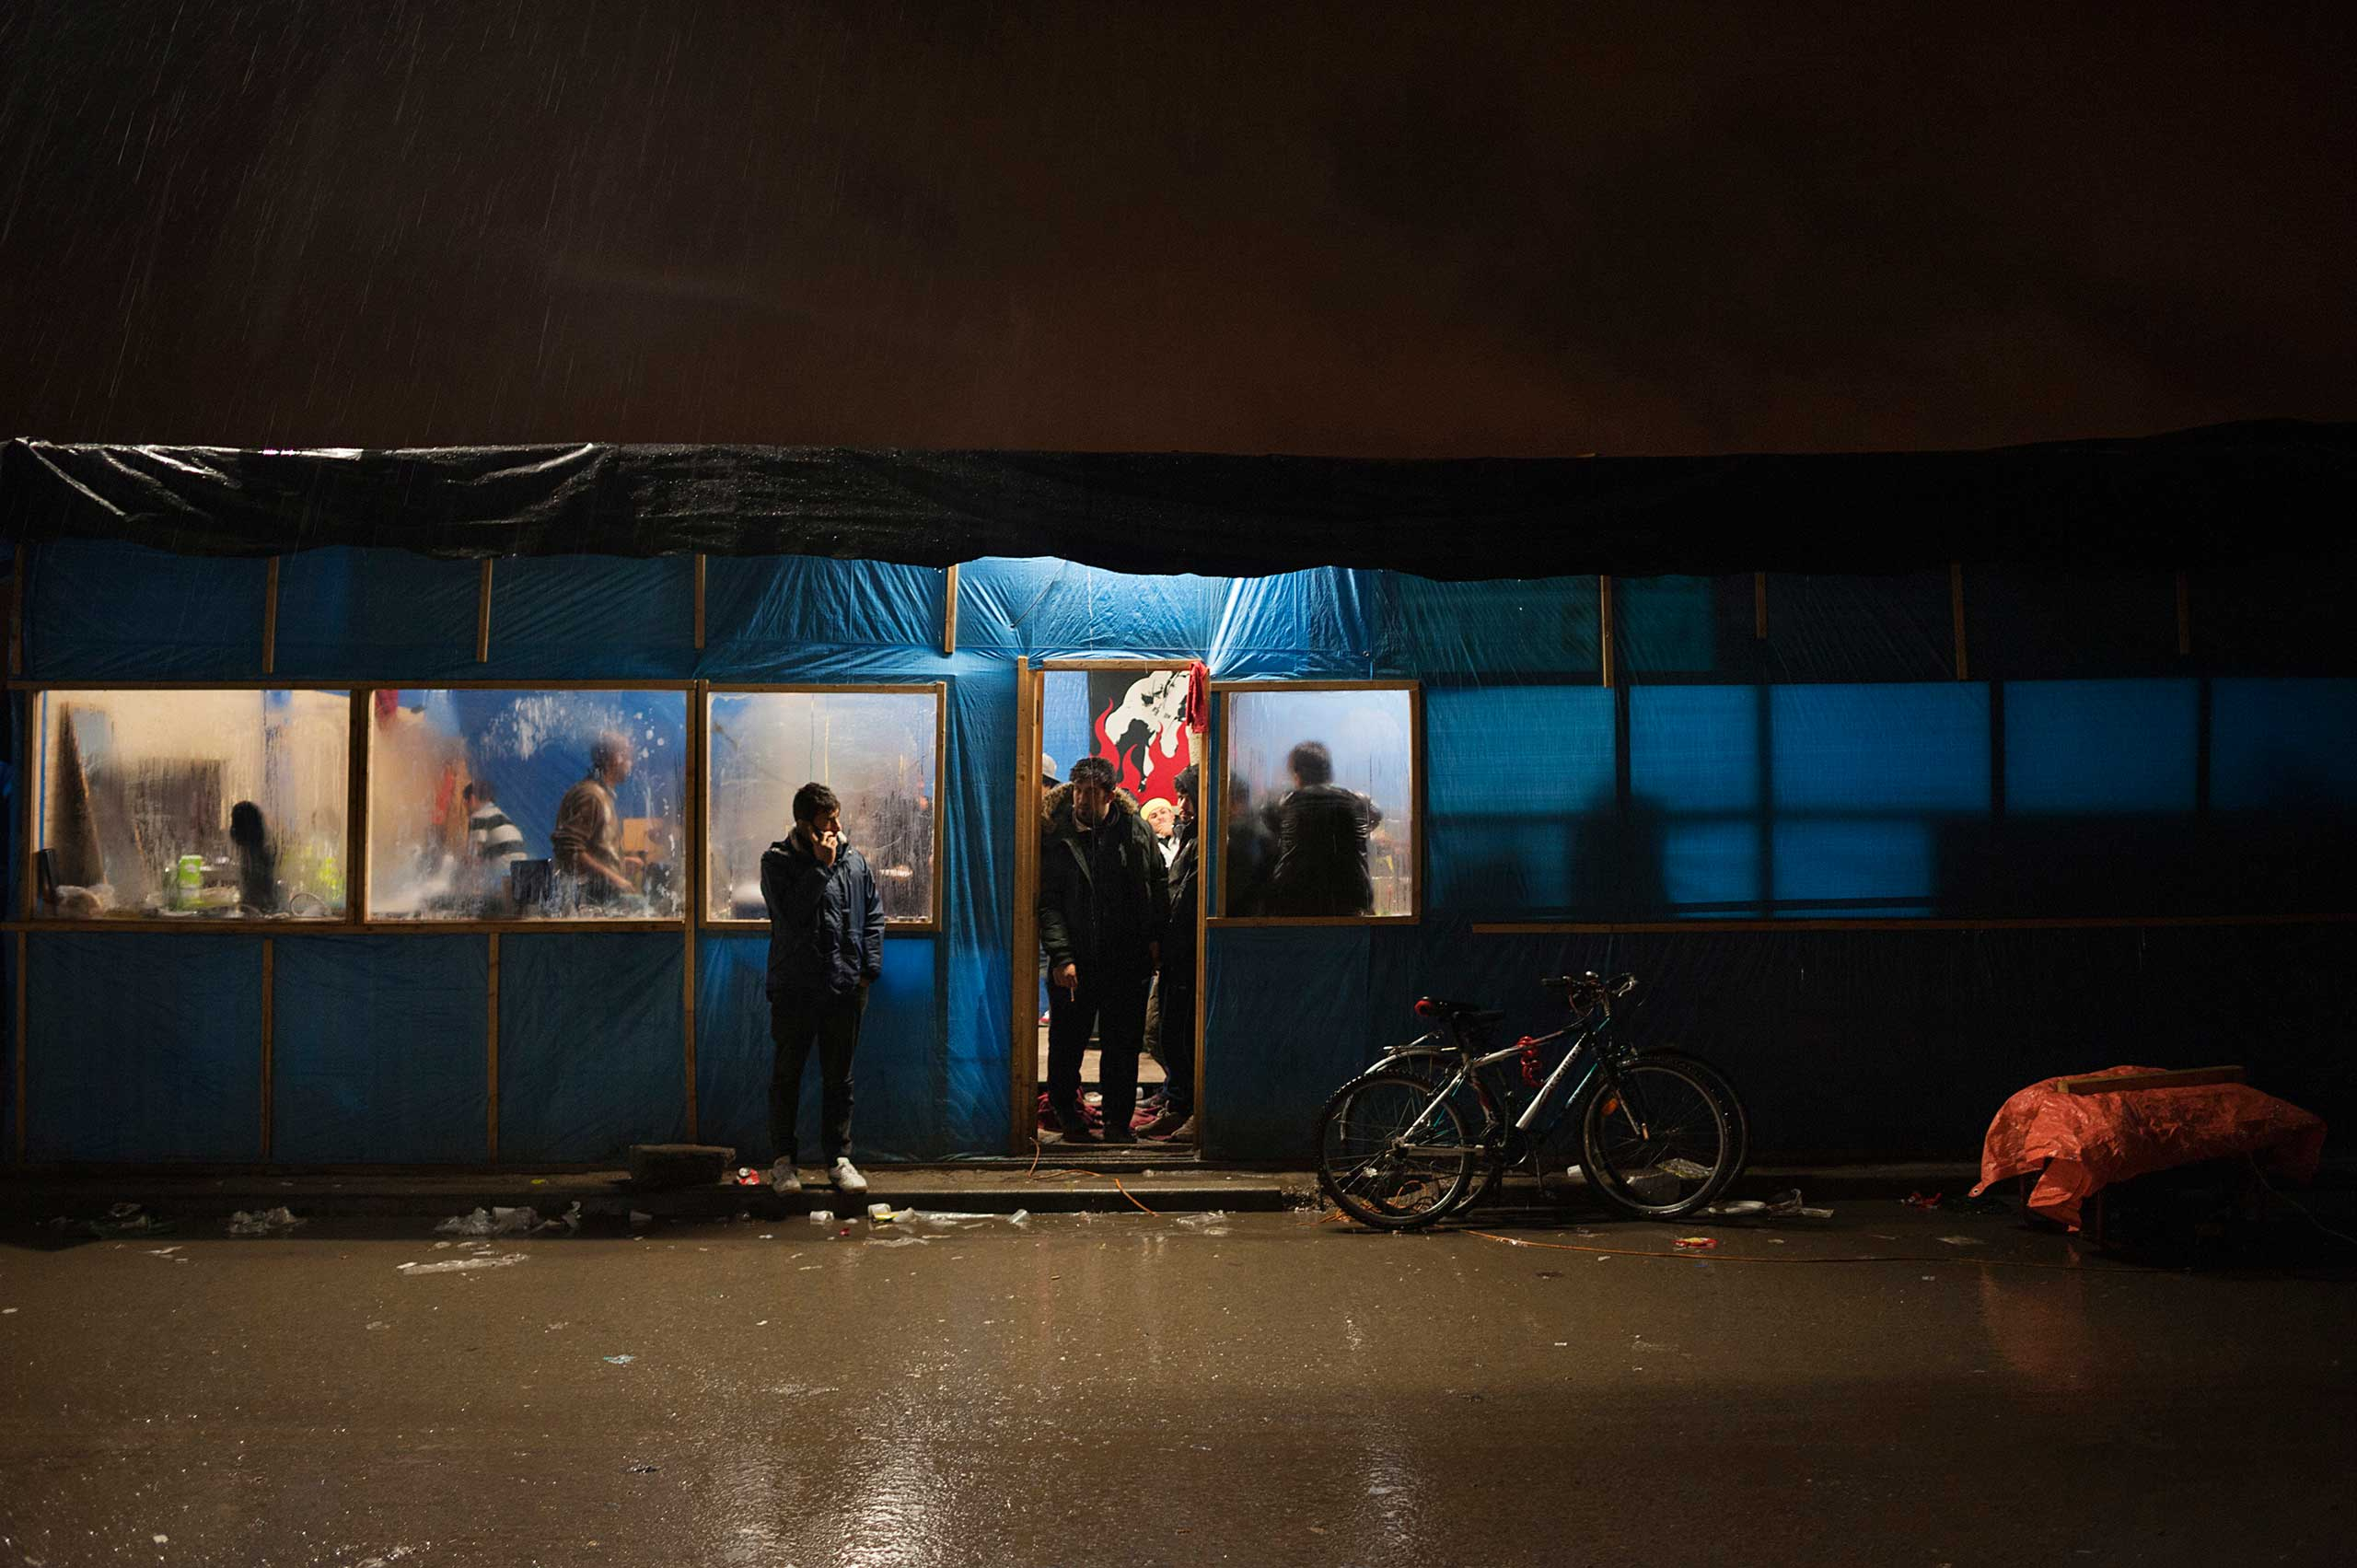 Shelter from the rain in an Afghan restaurant in Calais, France on Nov. 4, 2015.